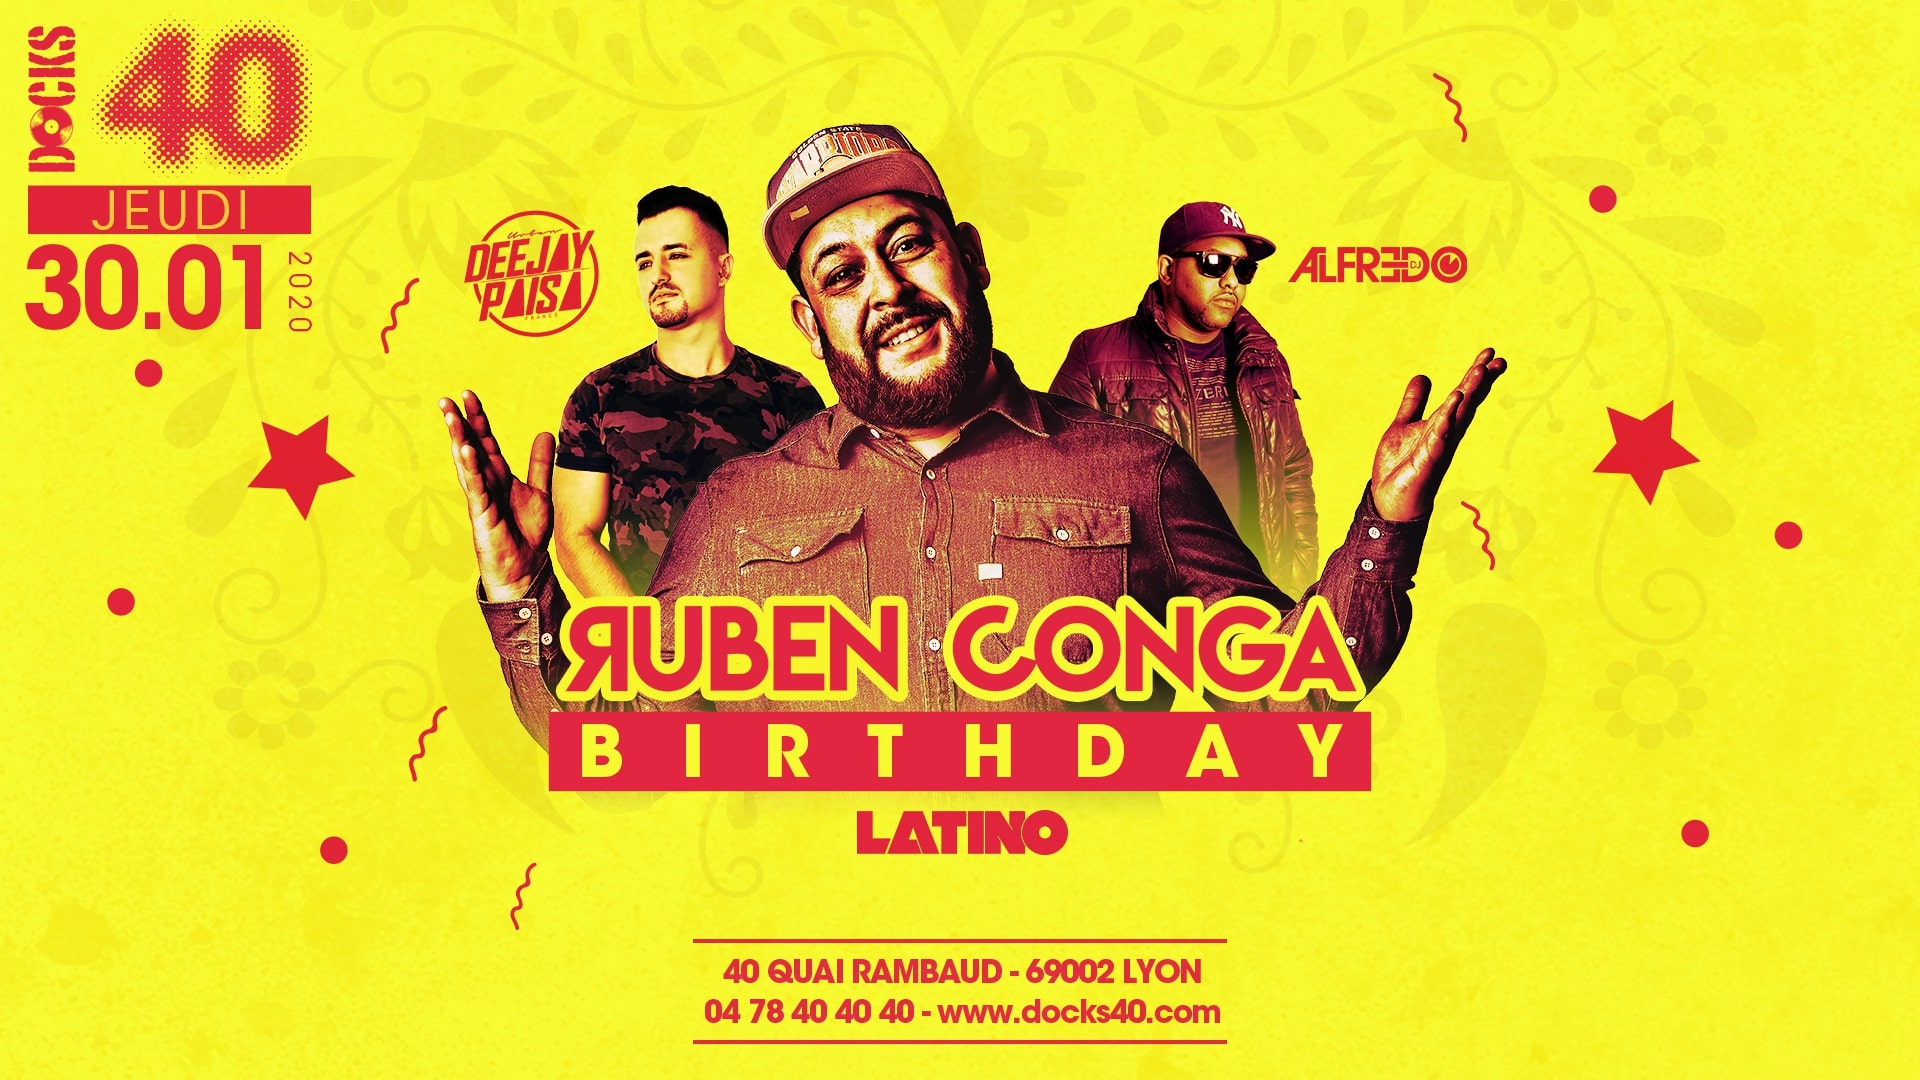 Ruben Conga Birthday